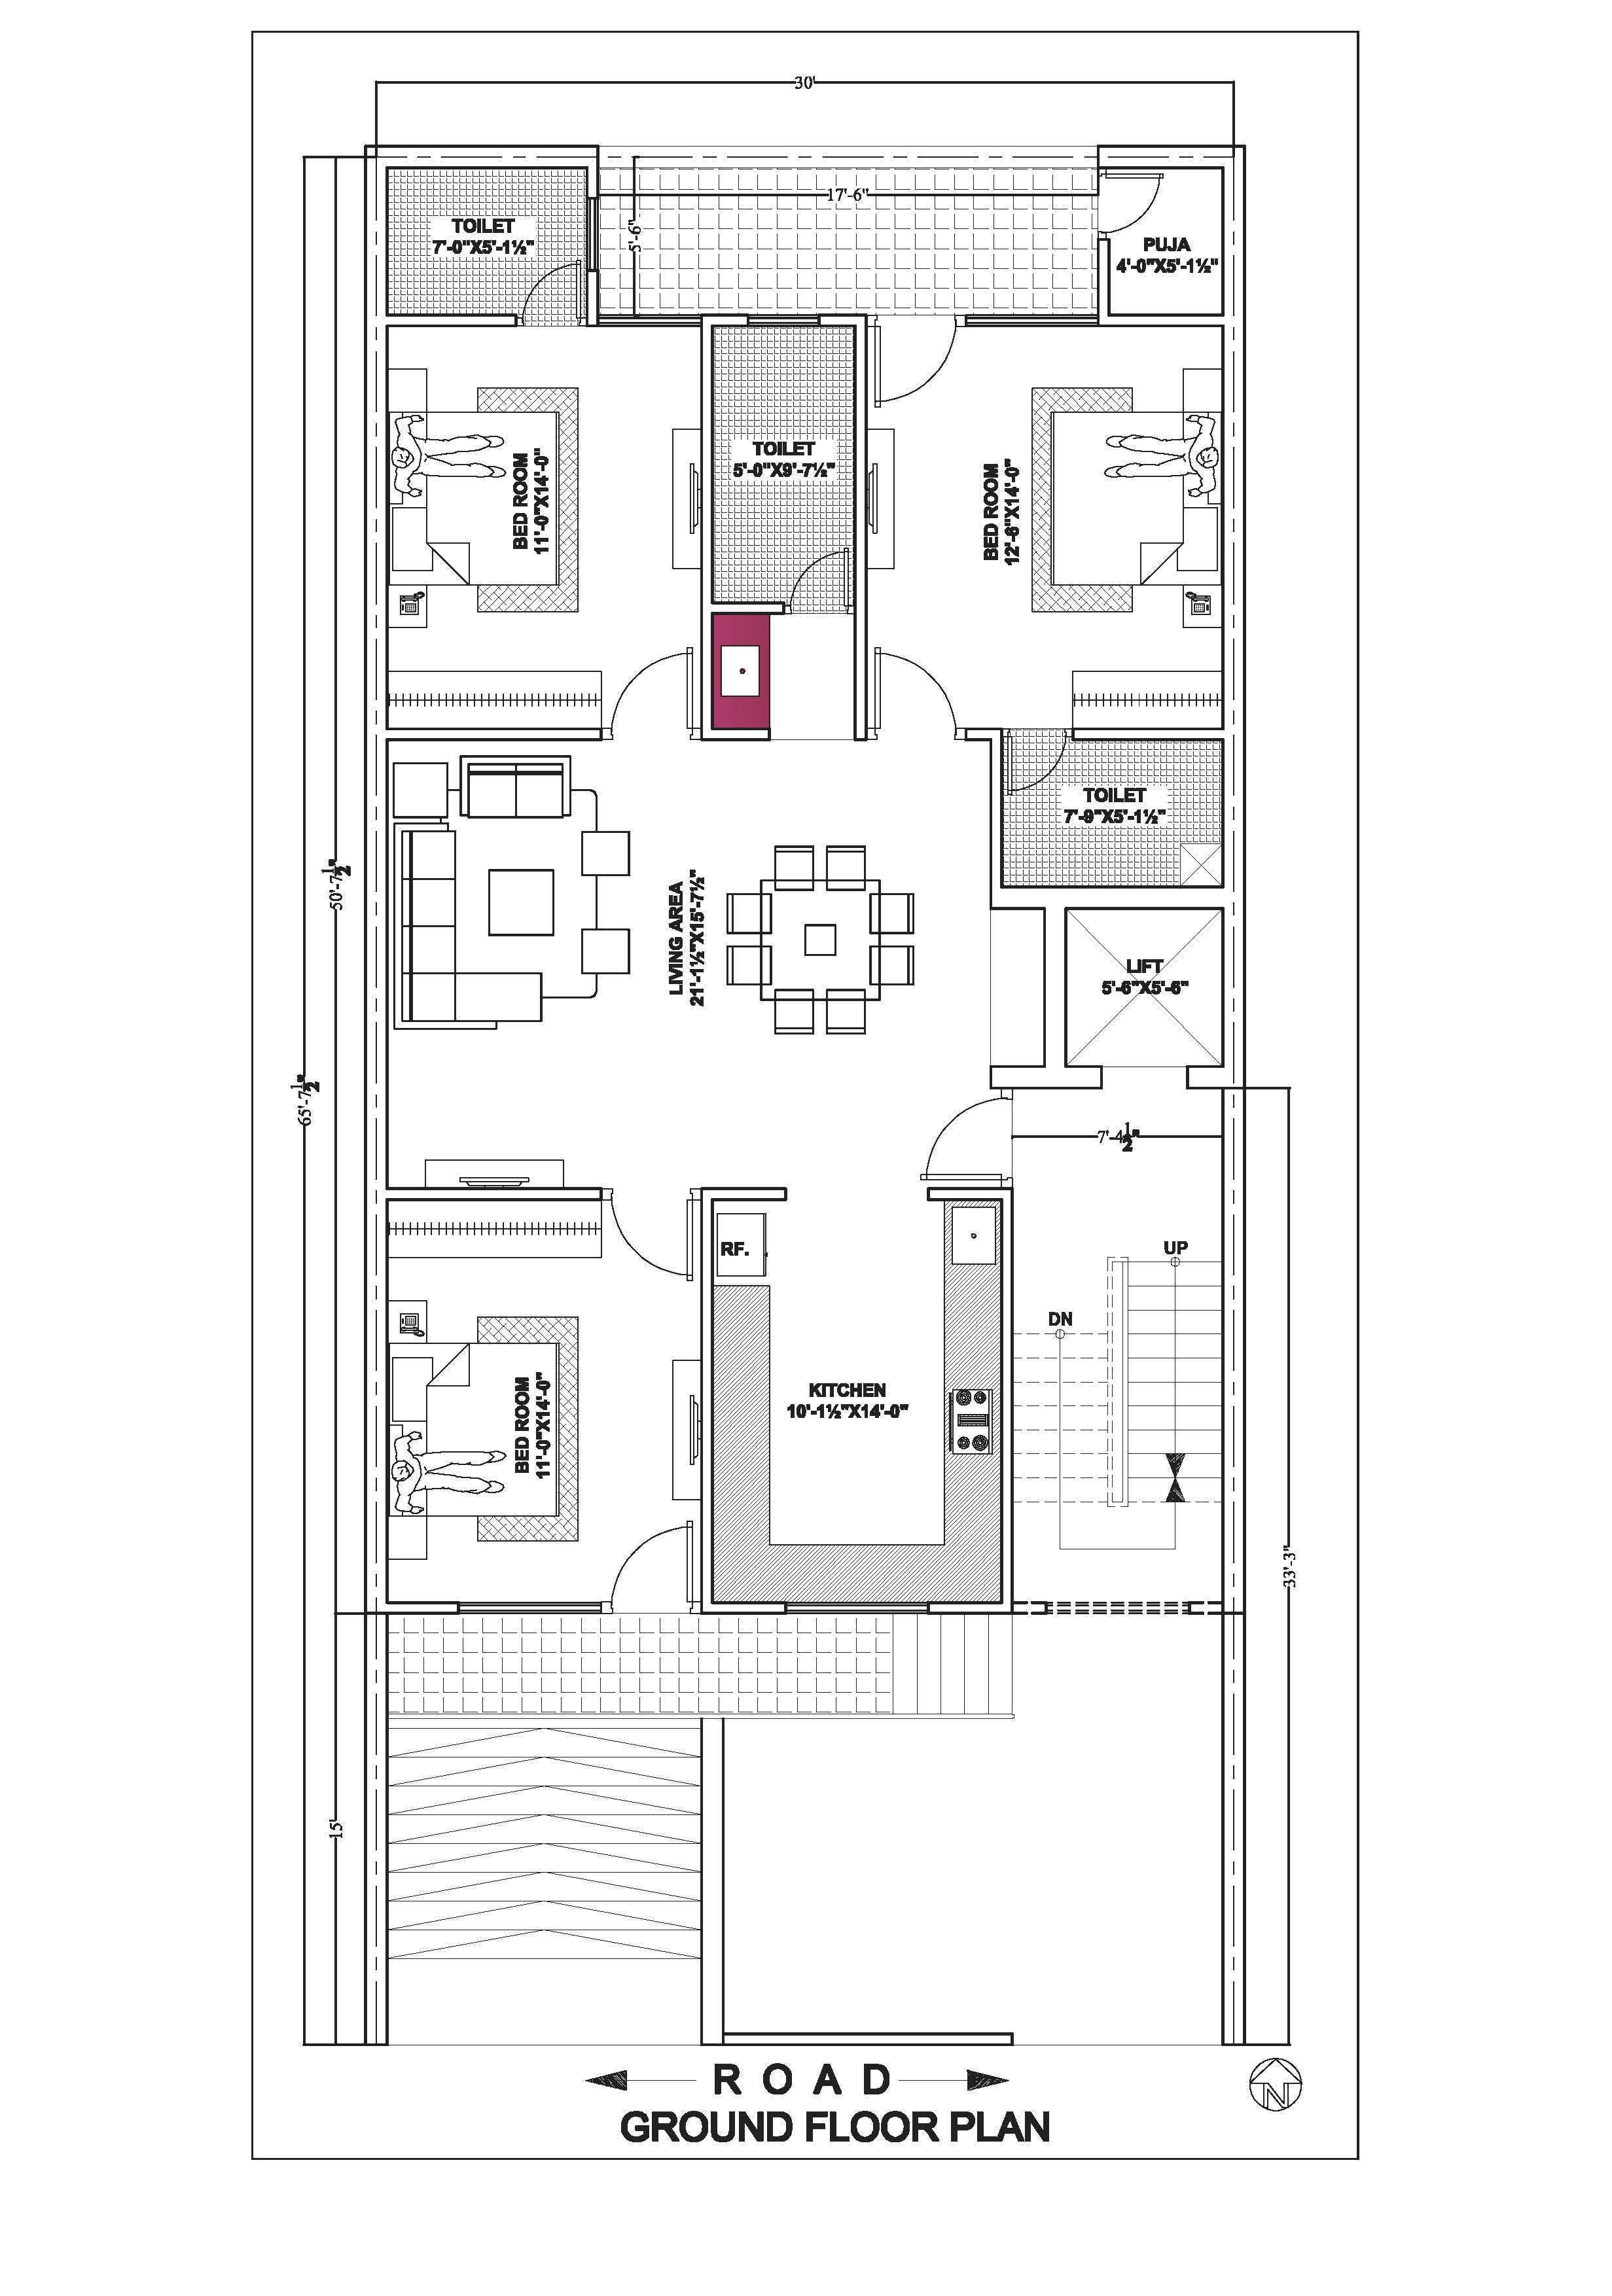 20 50 House Floor Plan According To East South North West Side House Floor Plans House Map Floor Plans